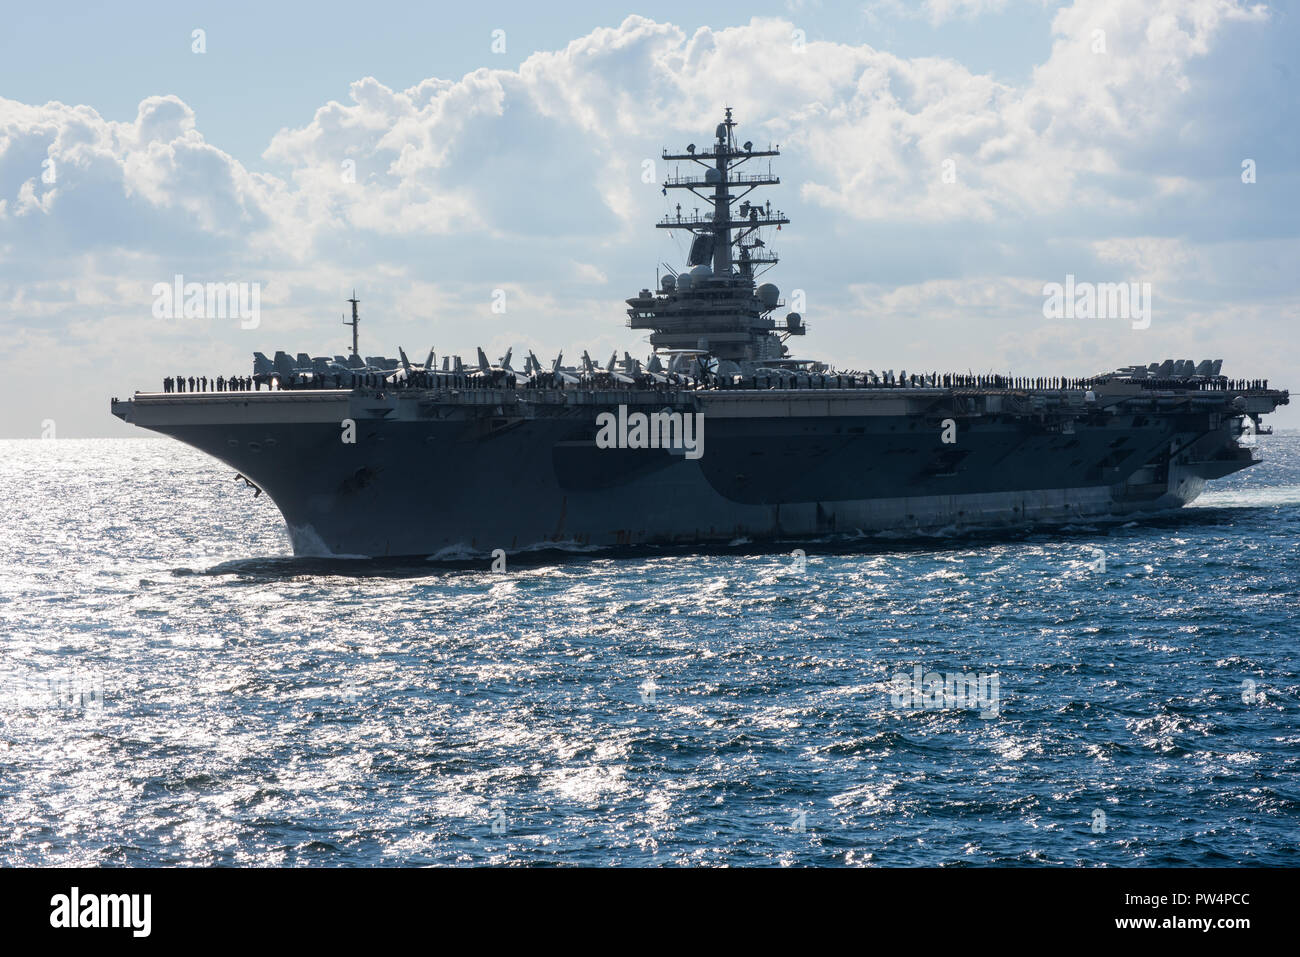 181011-N-TB148-0935 JEJU ISLAND, Republic of Korea, Republic of Korea (Oct. 11, 2018) The nuclear-powered aircraft carrier USS Ronald Reagan (CVN 76) participates in a pass-in-review during the Republic of Korea (ROK) 2018 International Fleet Review (IFR). The IFR is conducted every 10 years and has participants and observers from more than 20 foreign navies. (U.S. Navy photo by Mass Communication Specialist 3rd Class William Carlisle) Stock Photo